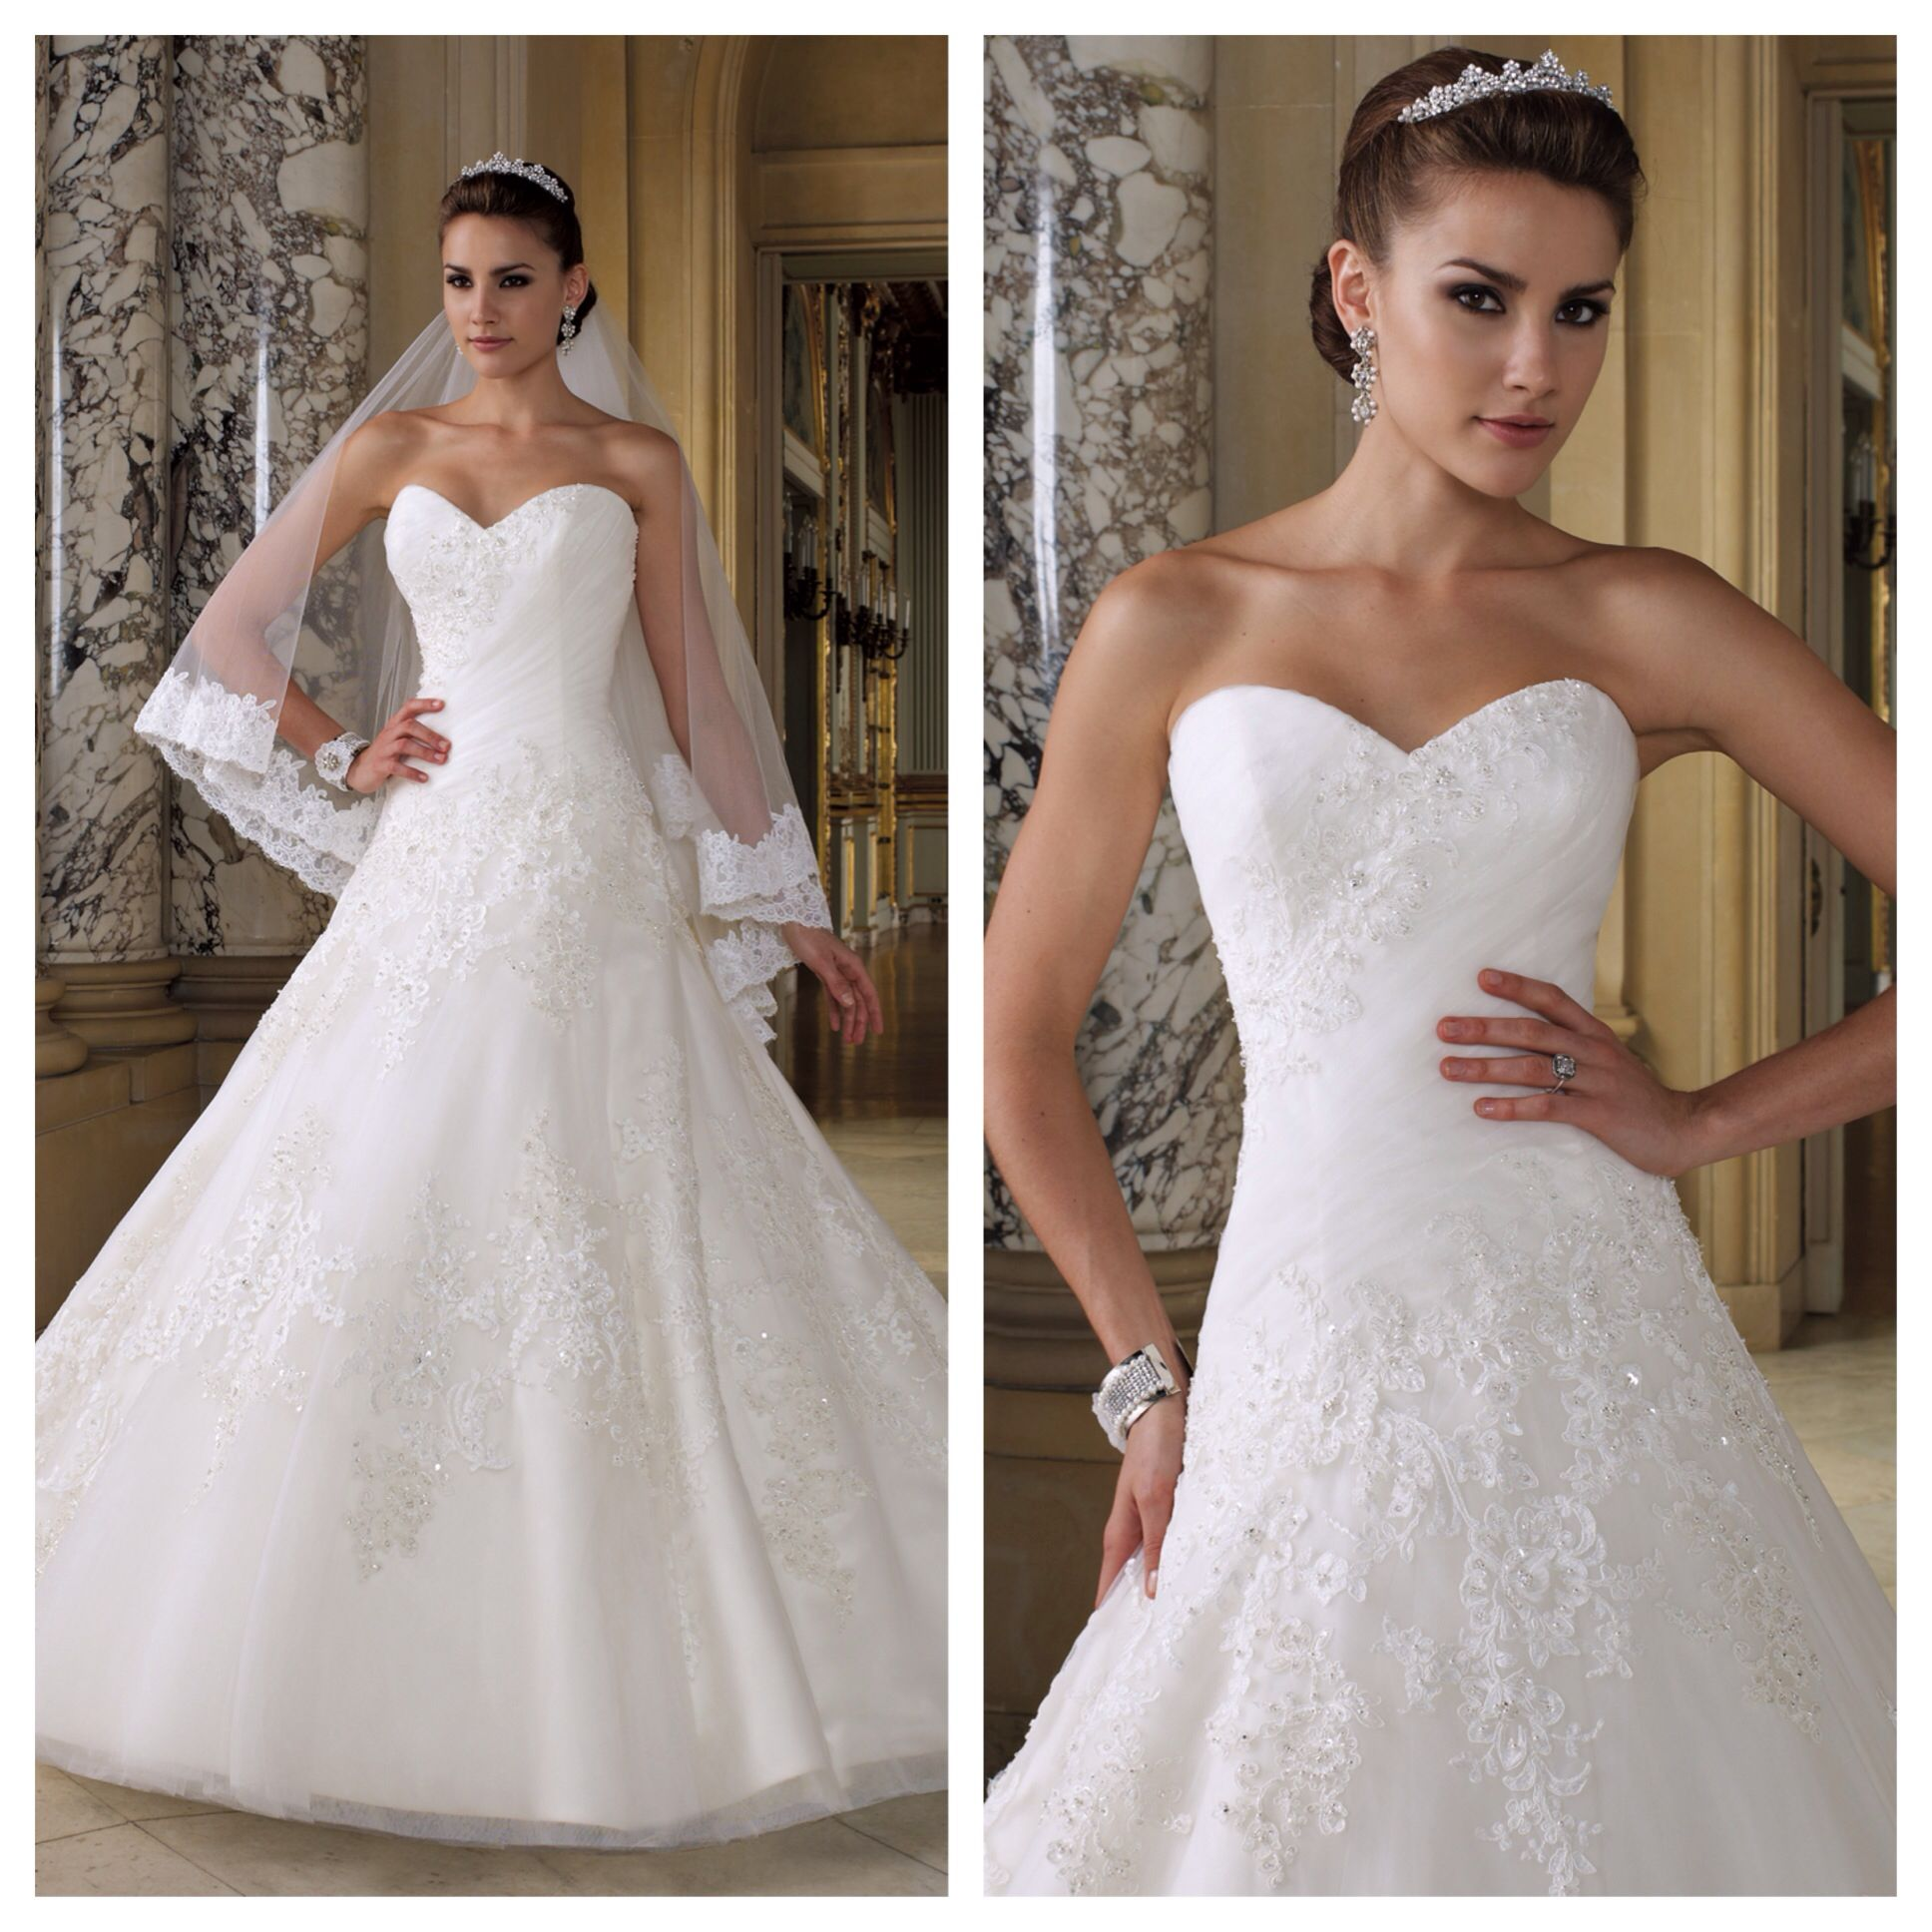 Strapless Lace And Tulle A-line Gown With Sweetheart